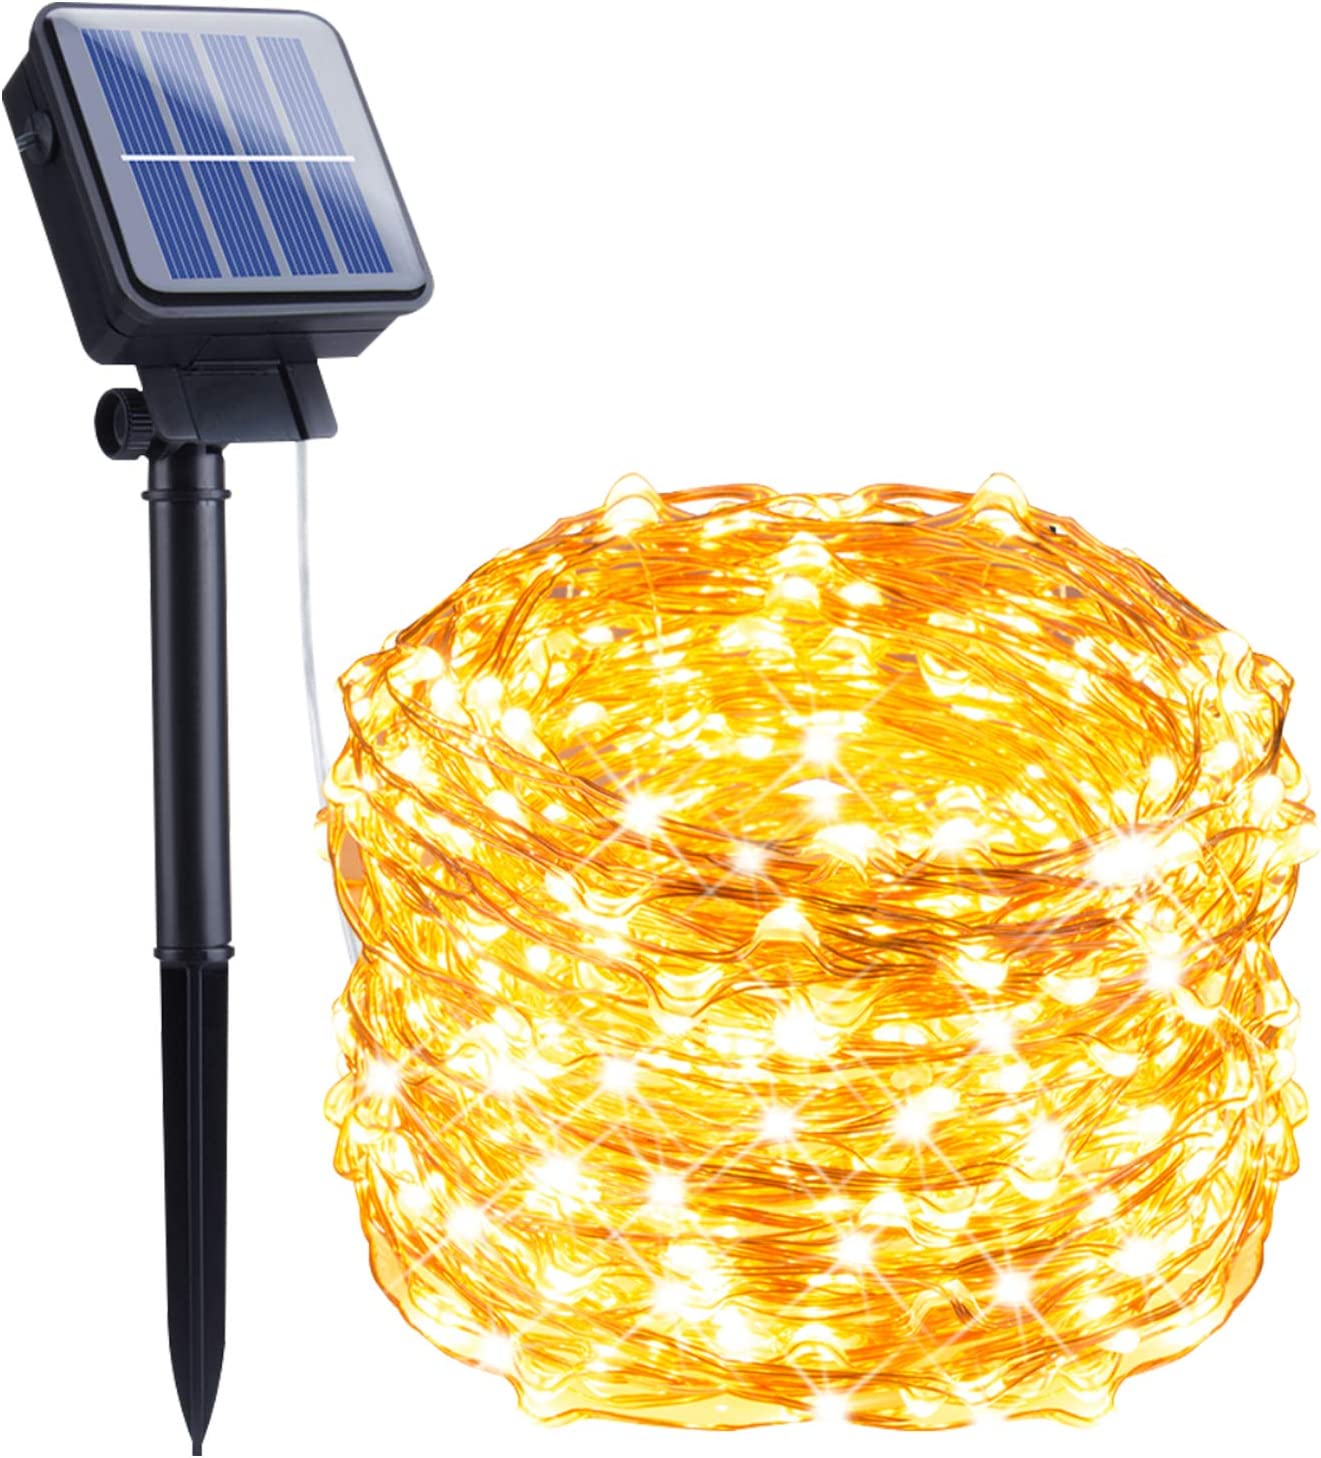 Outdoor Solar String Lights, 33Feet 100 Led Solar Powered Fairy Lights with 8 Lighting Modes Waterproof Decoration Copper Wire Lights for Patio Yard Trees Christmas Wedding Party (Warm White)